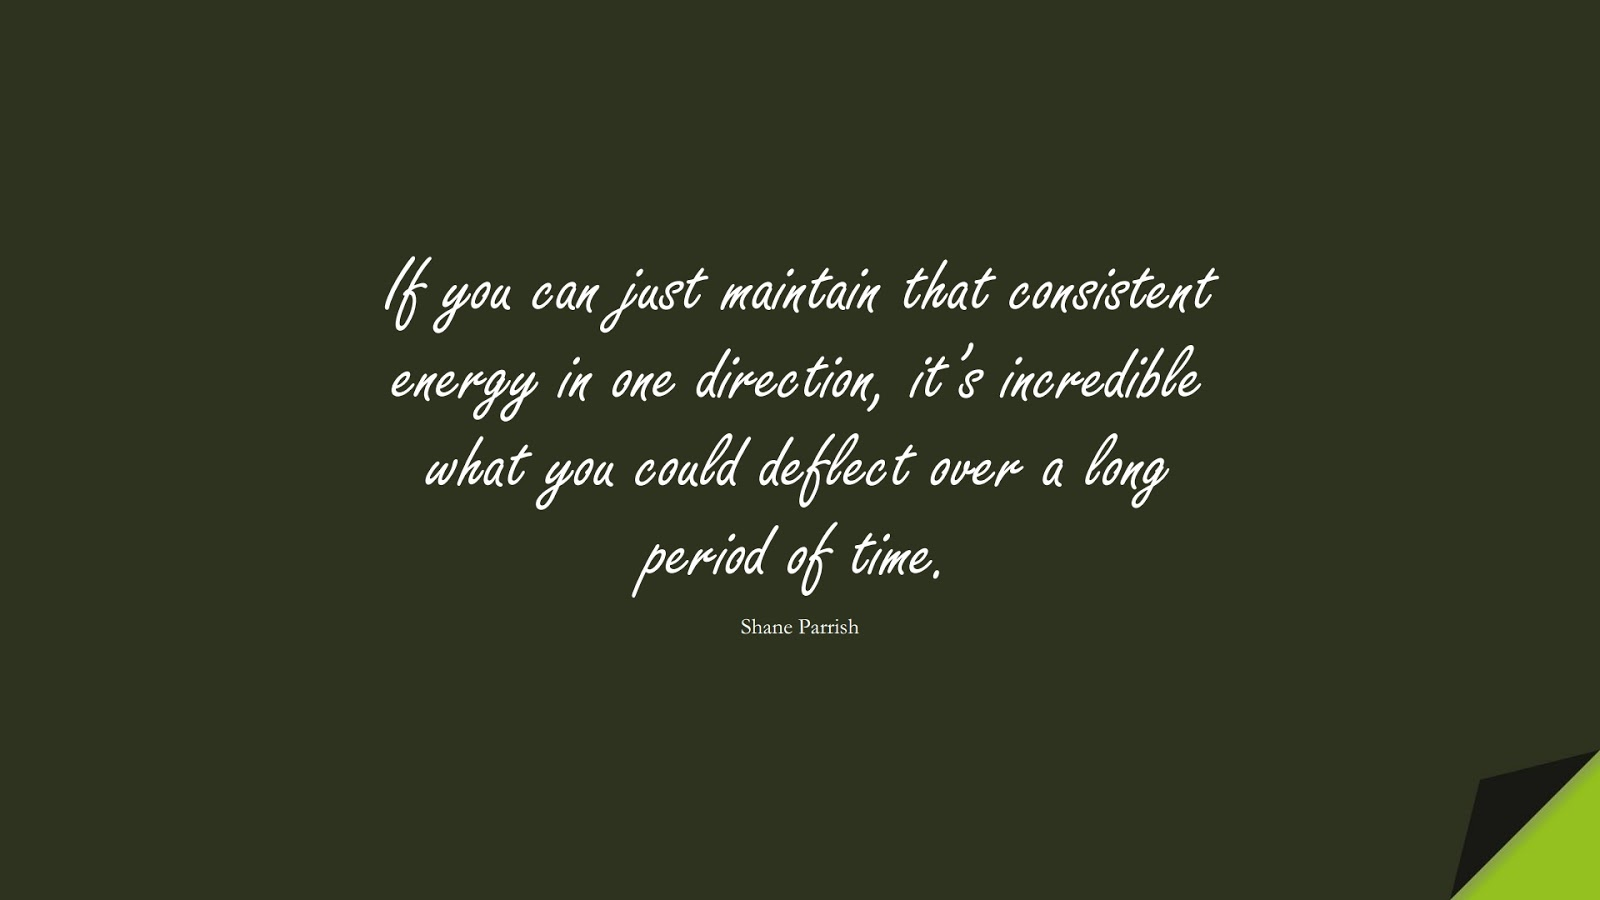 If you can just maintain that consistent energy in one direction, it's incredible what you could deflect over a long period of time. (Shane Parrish);  #NeverGiveUpQuotes